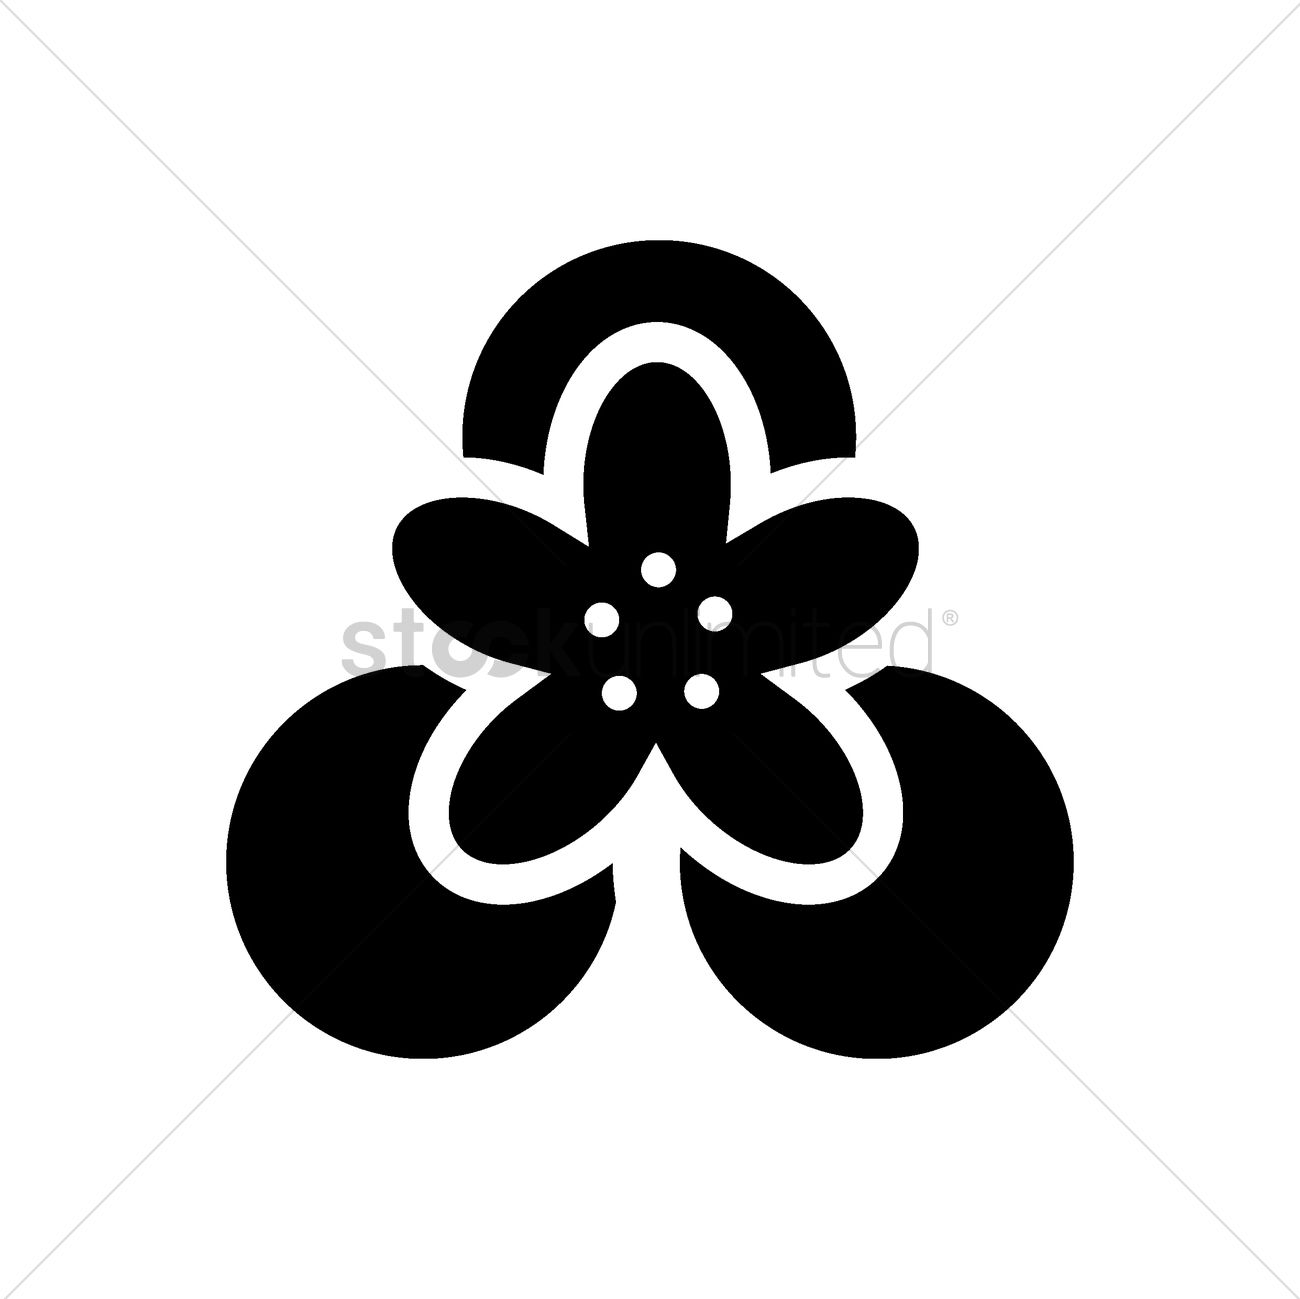 Top view of lotus flower on leaf vector image 1981097 stockunlimited top view of lotus flower on leaf vector graphic izmirmasajfo